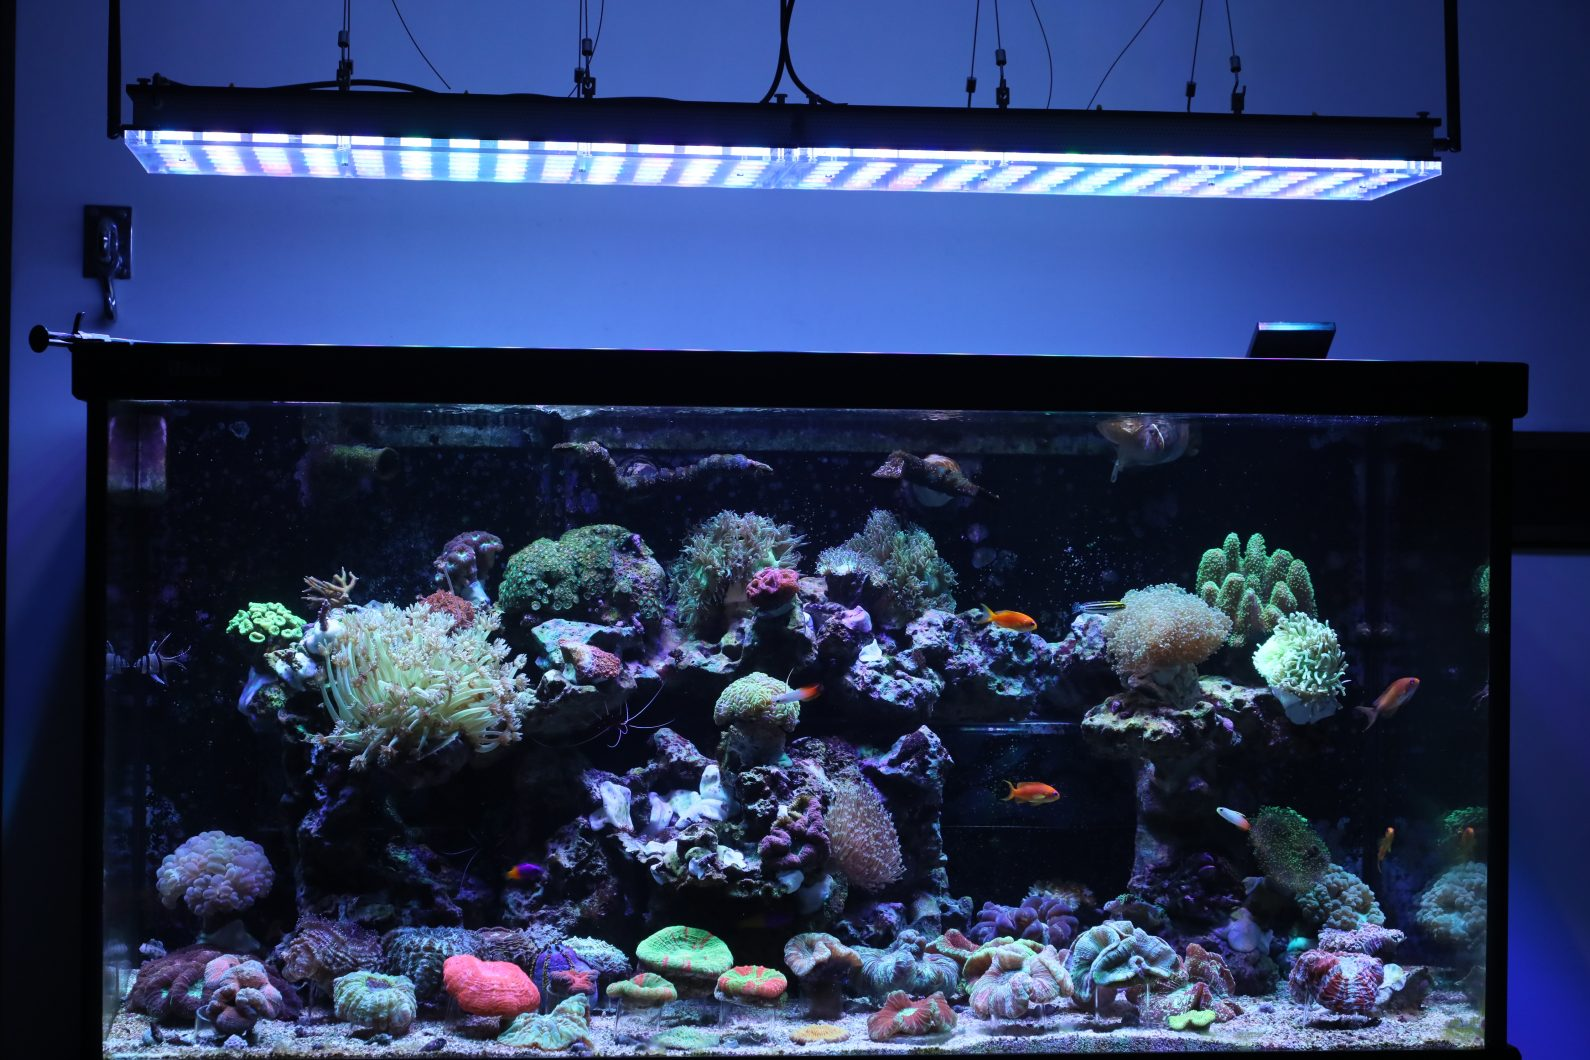 Orphek_Reff_Aquarium_LED_Light_Atlantik_v4_best_LED_Aquarium_lighting7